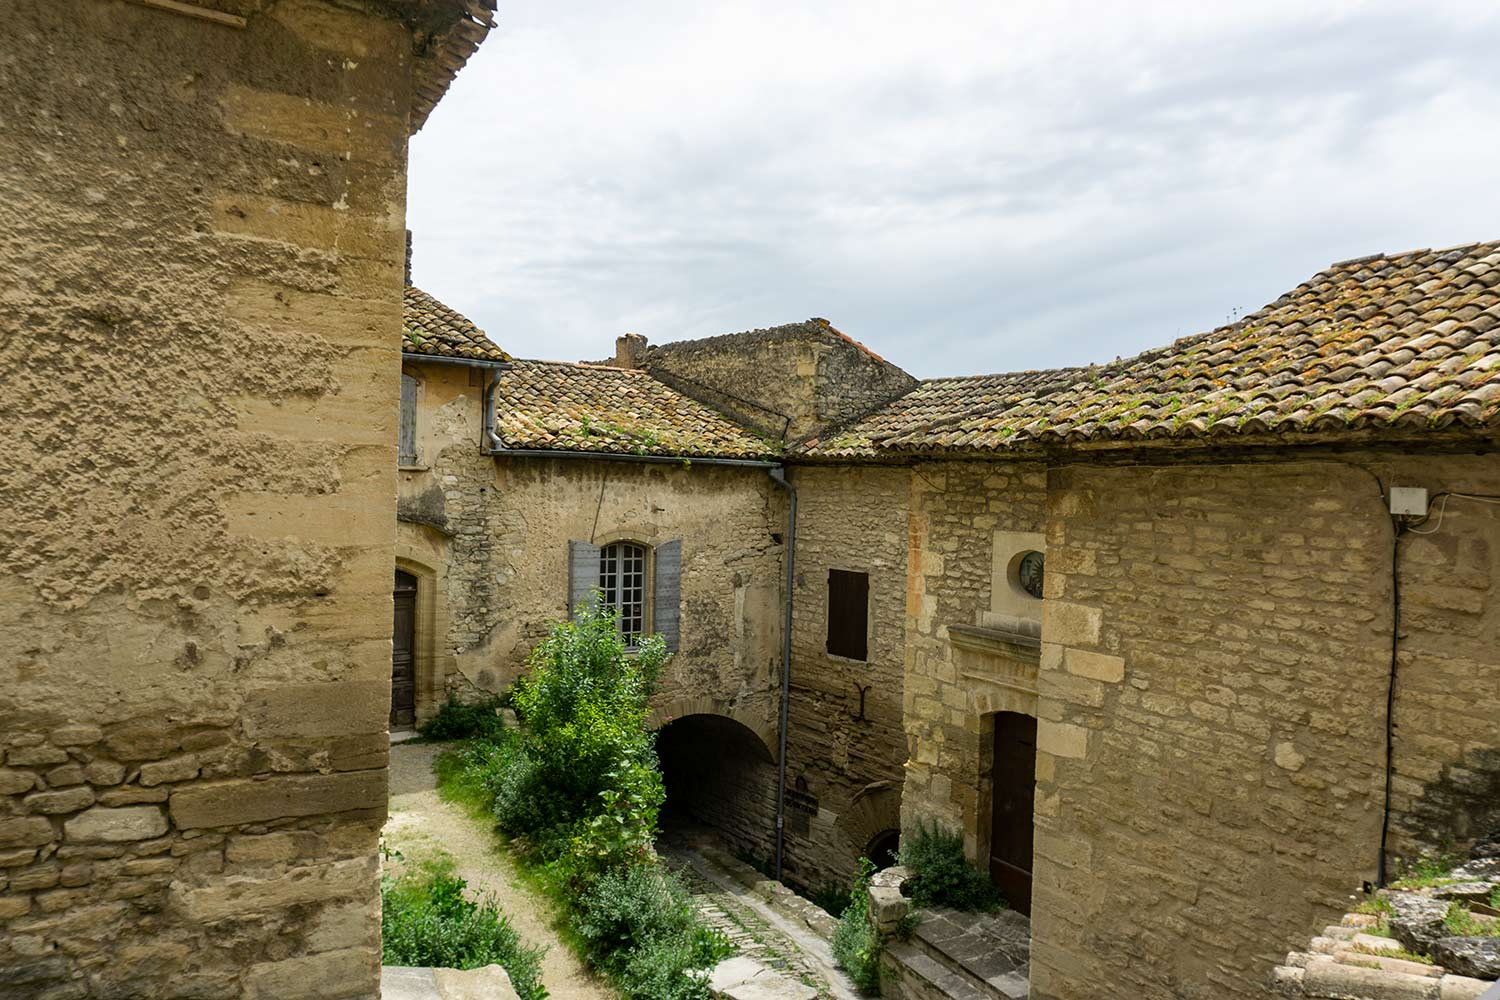 A street in Gordes, France surrounded by stone buildings.